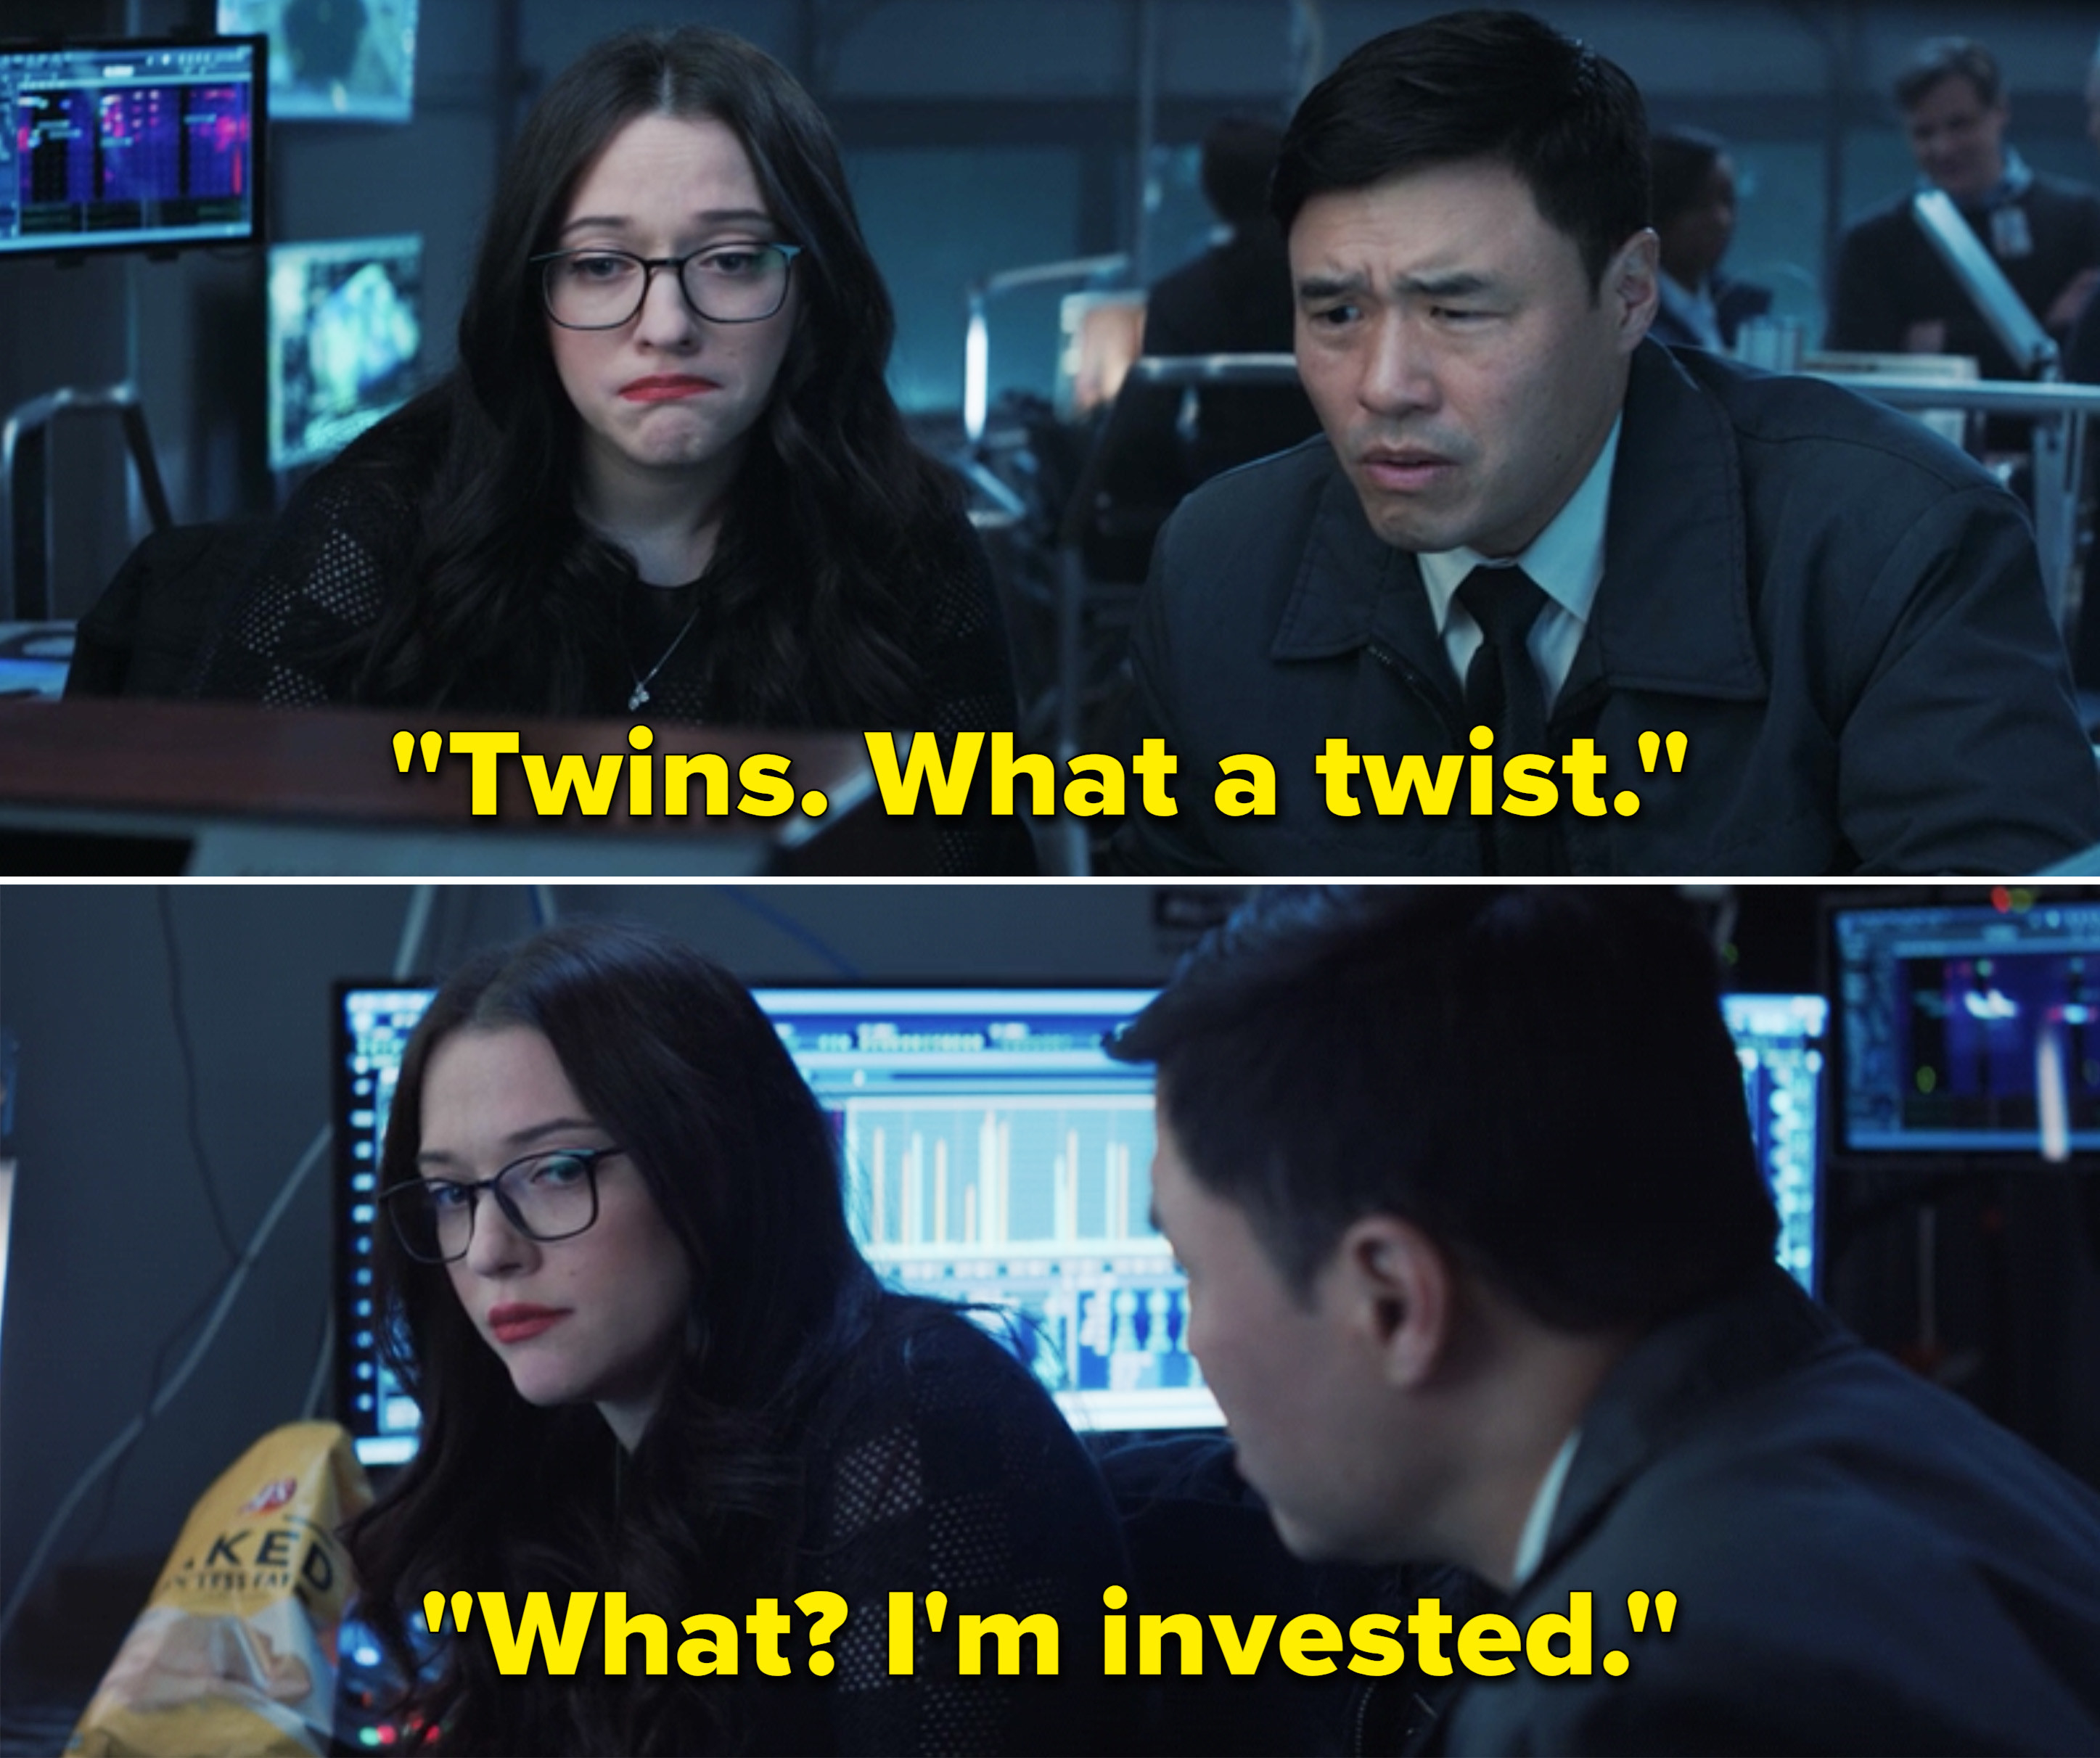 """Agent Woo says """"Twins. What a twins."""" and Darcy tears up and says """"What? I'm invested"""" when Woo gives her a questioning look"""